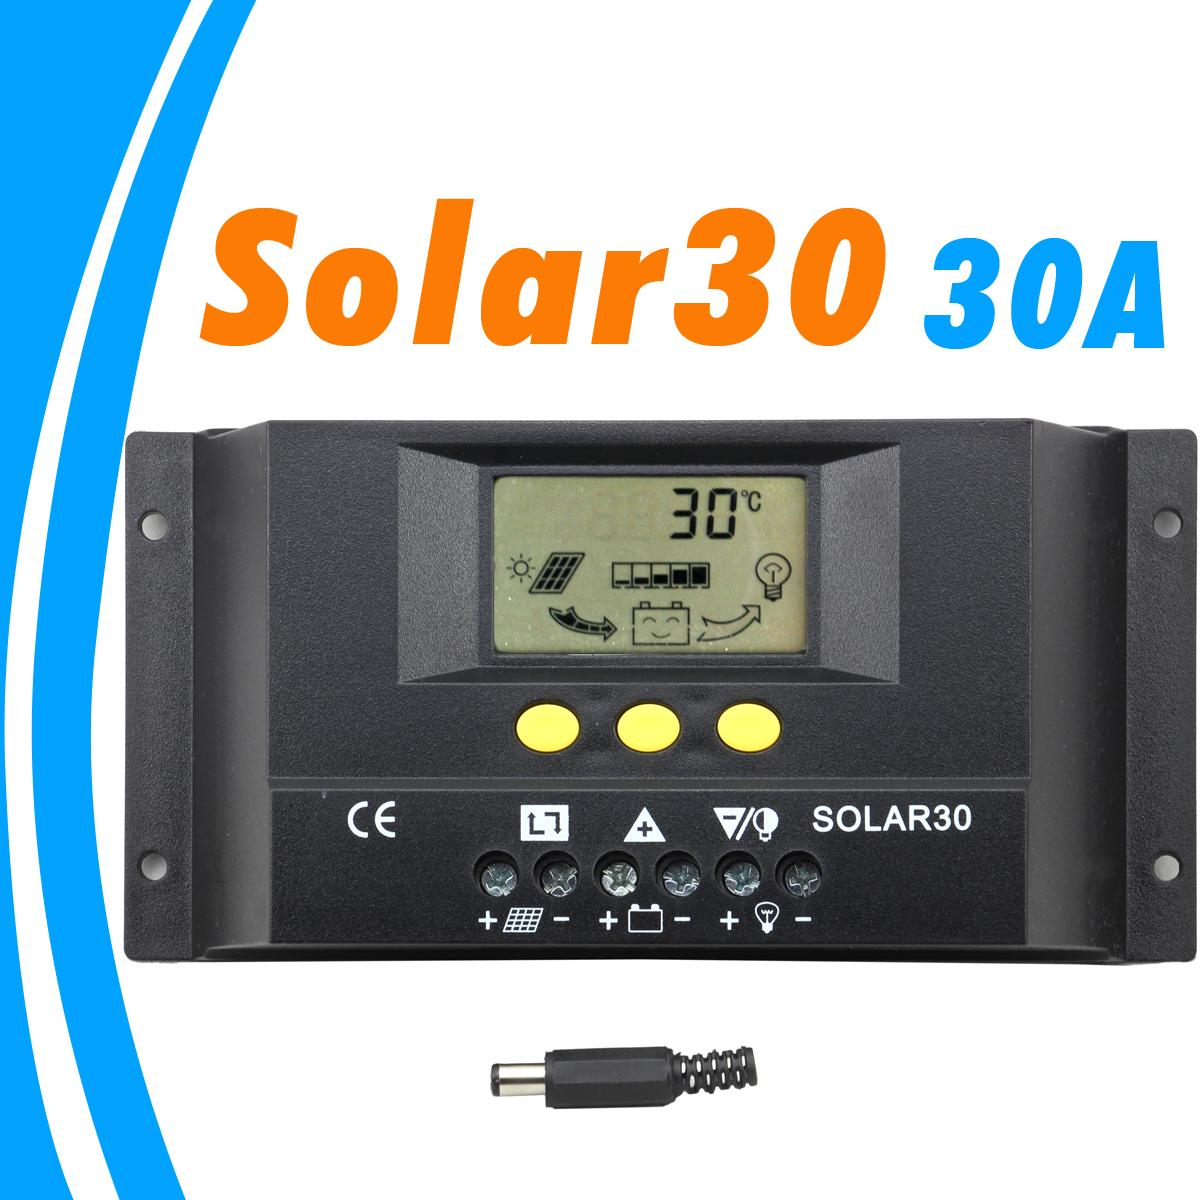 PWM Controller Solar 30A 12V 24V Auto LCD Display for Max 360w and 720w Panel Solar with Temp Senor Light and Timer Control vs4548bn 45a 24 48v auto pwm controller network access computer control can connect with mt50 for communication